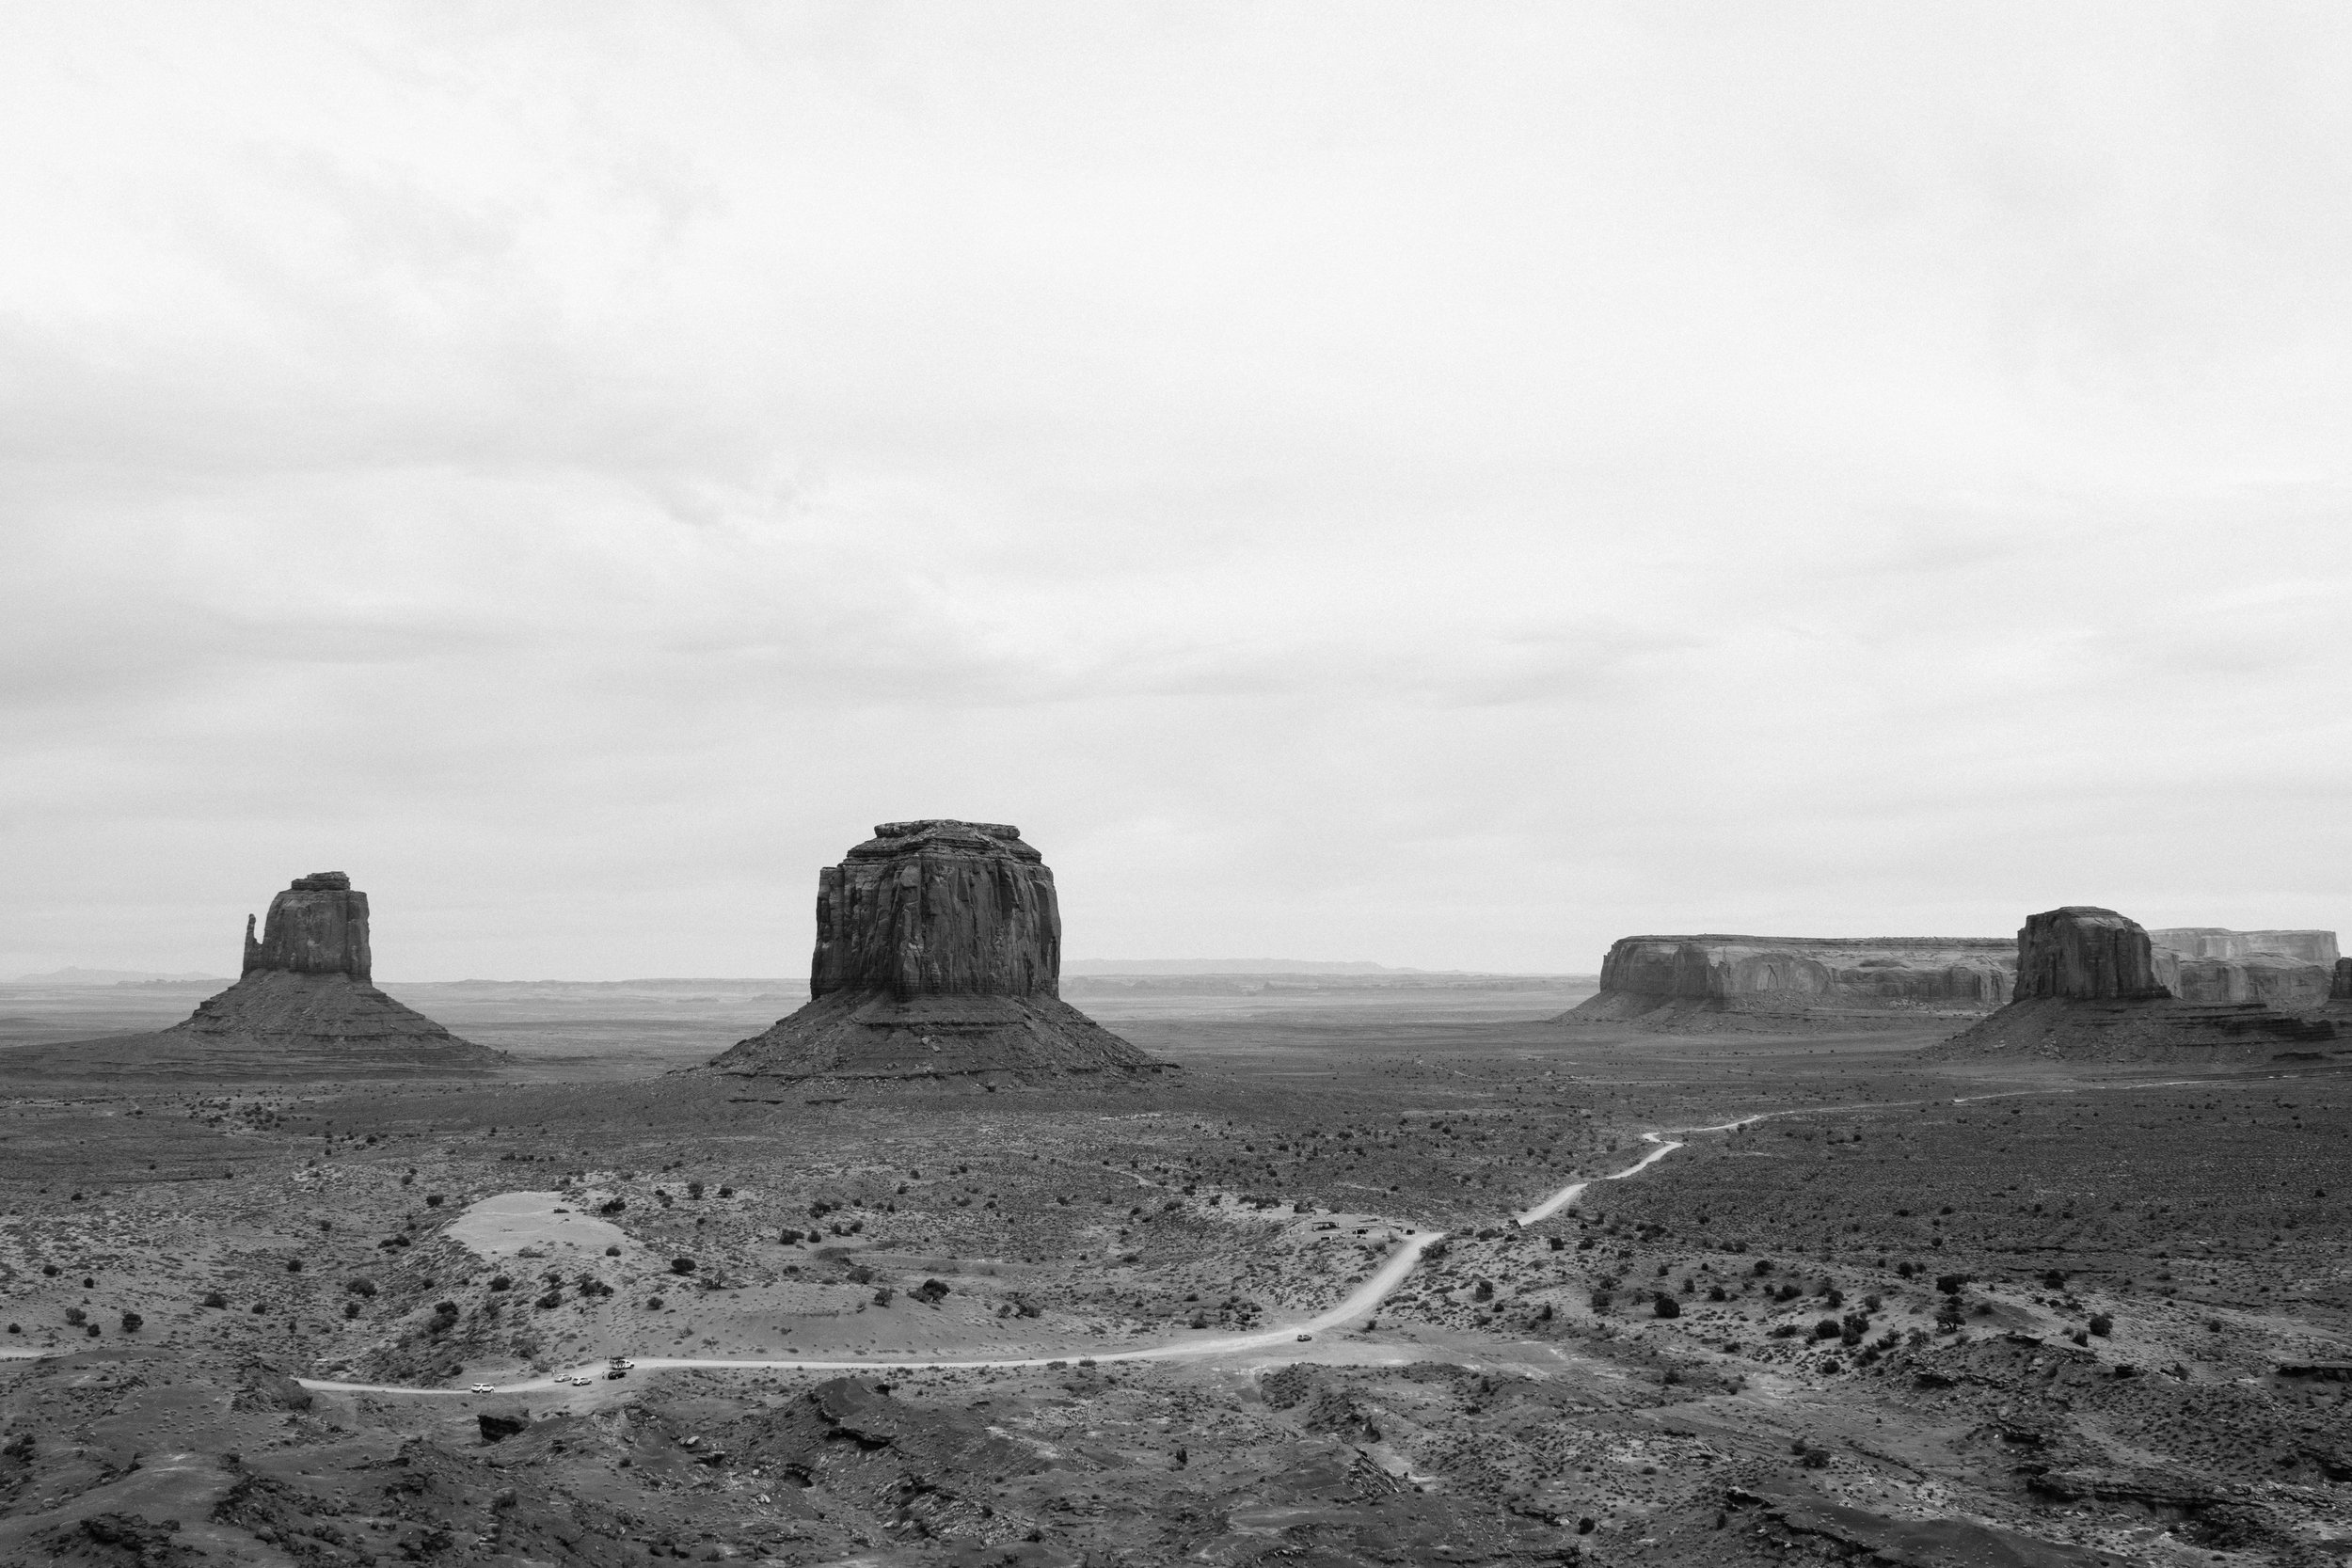 I never edit my pictures to black & white, but this landscape just begs for the drama that B&W brings.